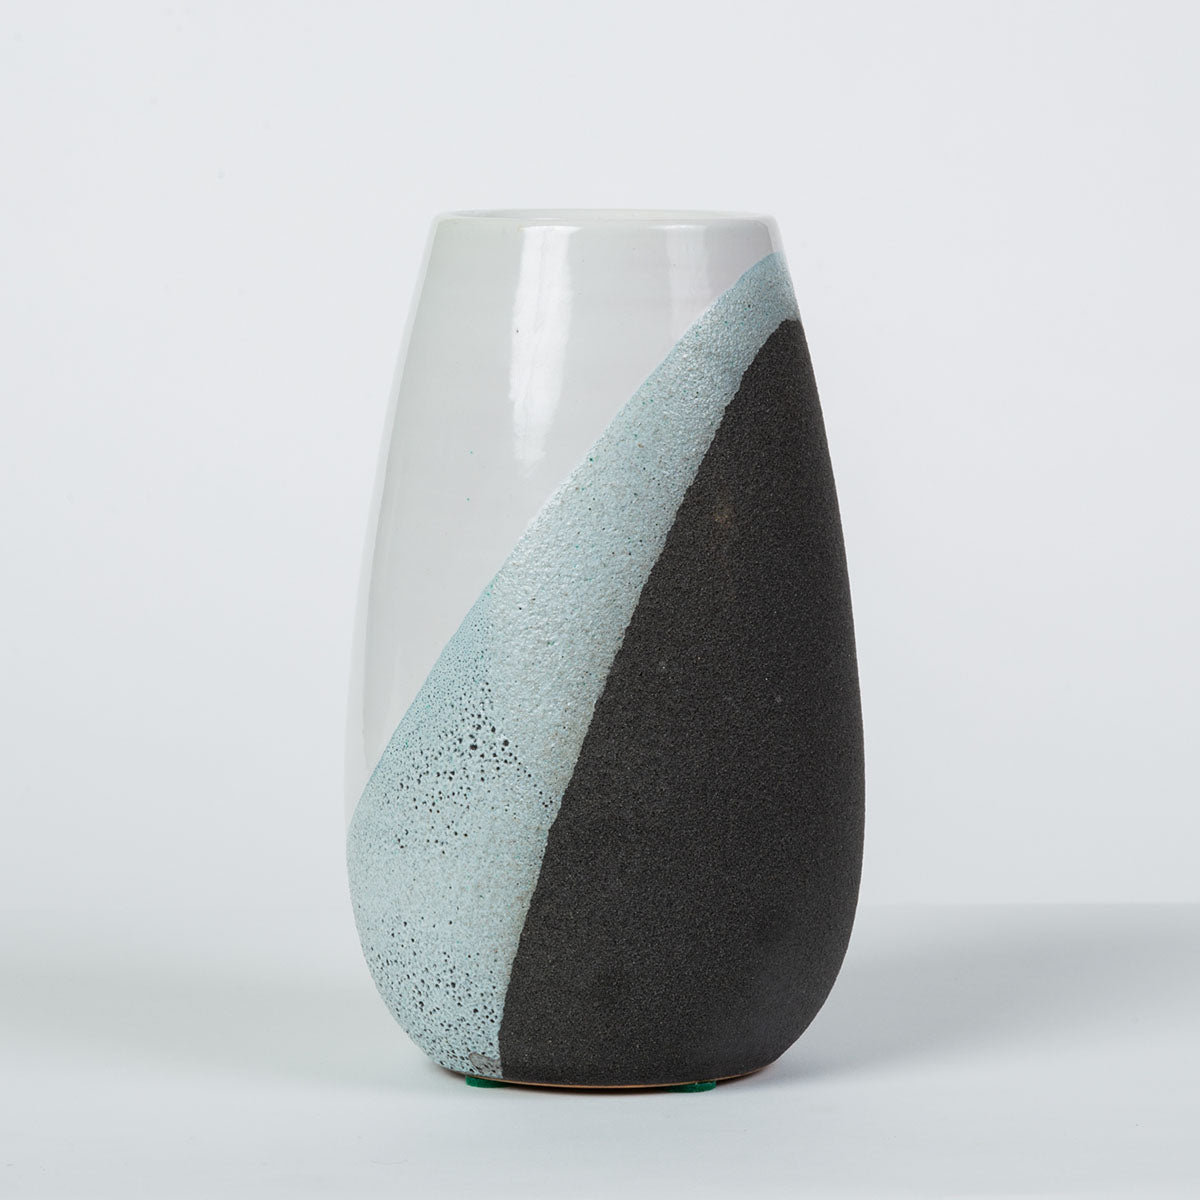 Ettore Sottsass for Bitossi Glazed Ceramic Vase